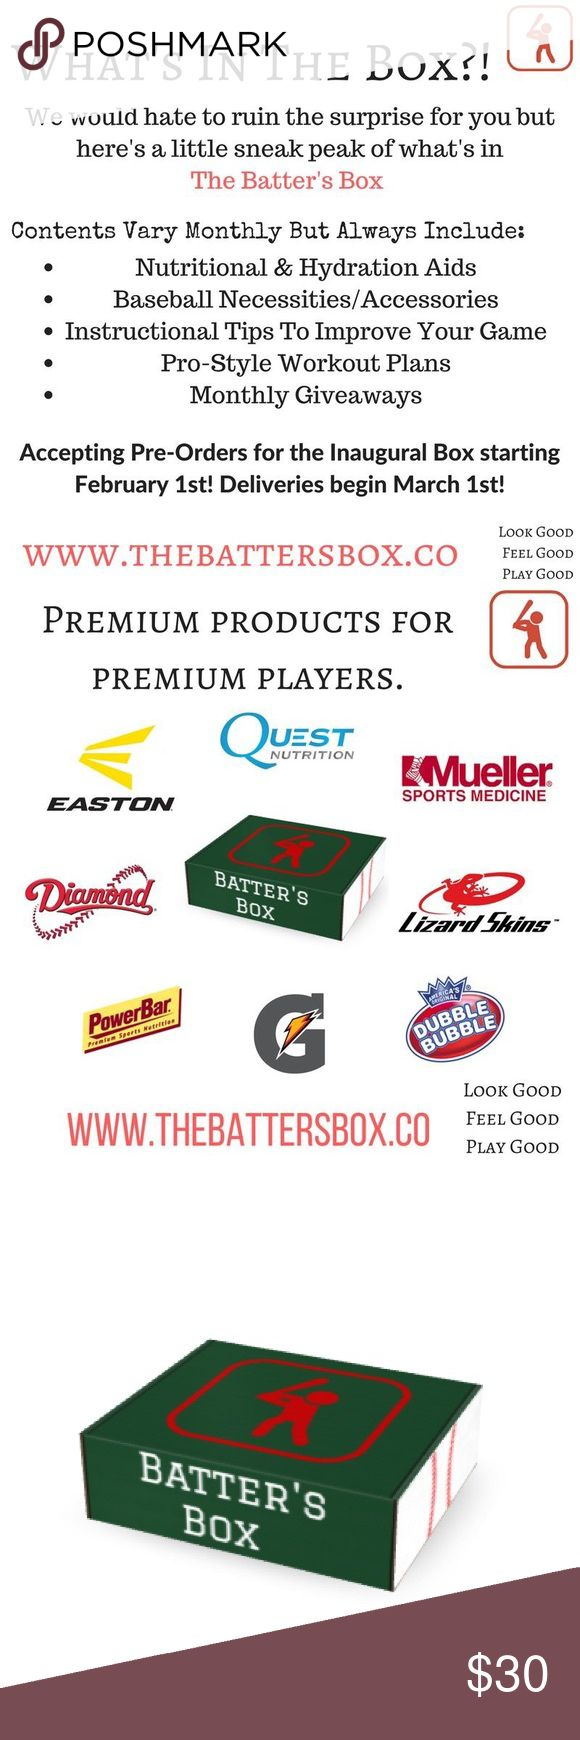 The Batter's Box! Baseball Supply Box! I just wanted to share something with you fellow baseball parents! It's filled with baseball gear, hydration supplements and monthly surprises . Some of the boxes this month included Spring training tickets and a jersey! Designed by baseball players, made for baseball players ! Also was featured on bay news 9 !📦Ships next day 💚bundle and save!! 💋price firm. Nike Other